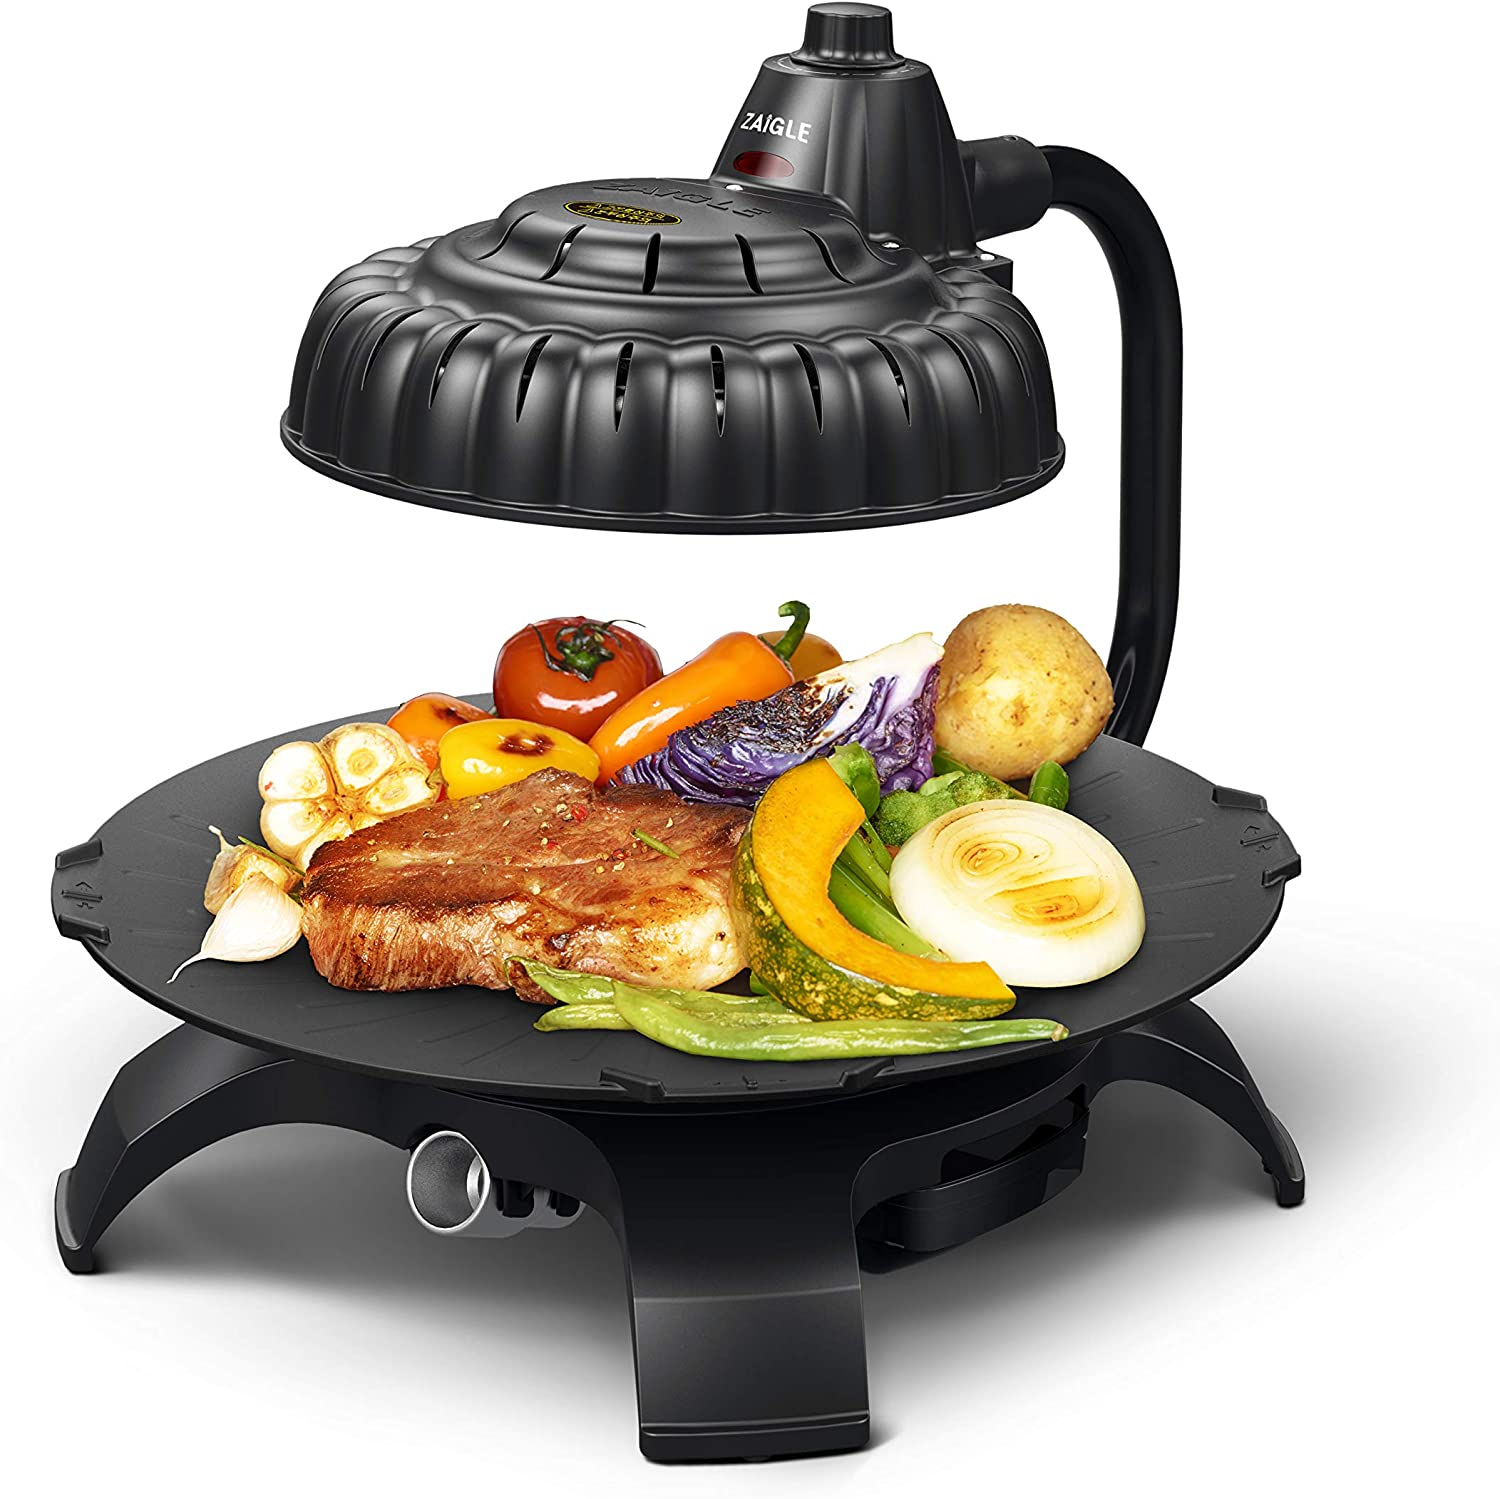 Zaigle ZG-HU375 Handsome Infrared KBBQ Electric Grill, 120v, 3 pans, tongs included Black